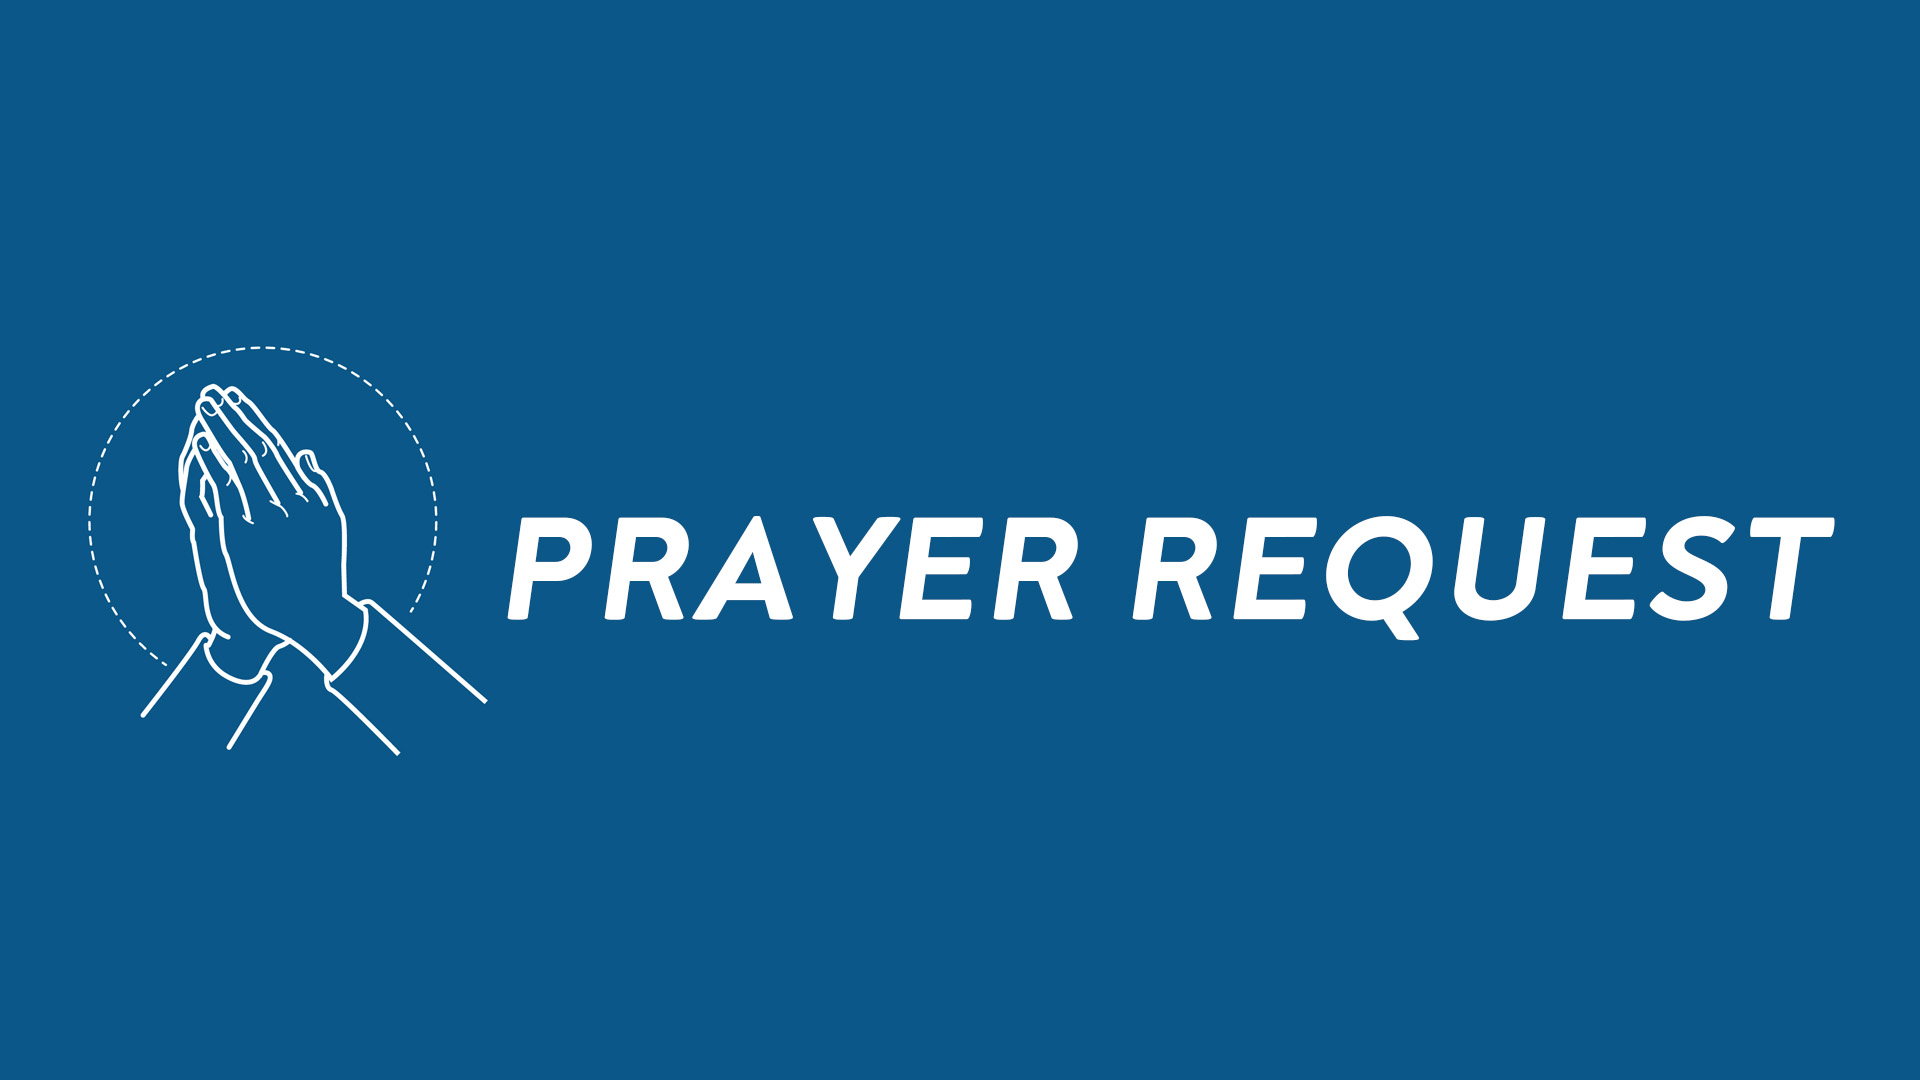 jpg-prayerrequest